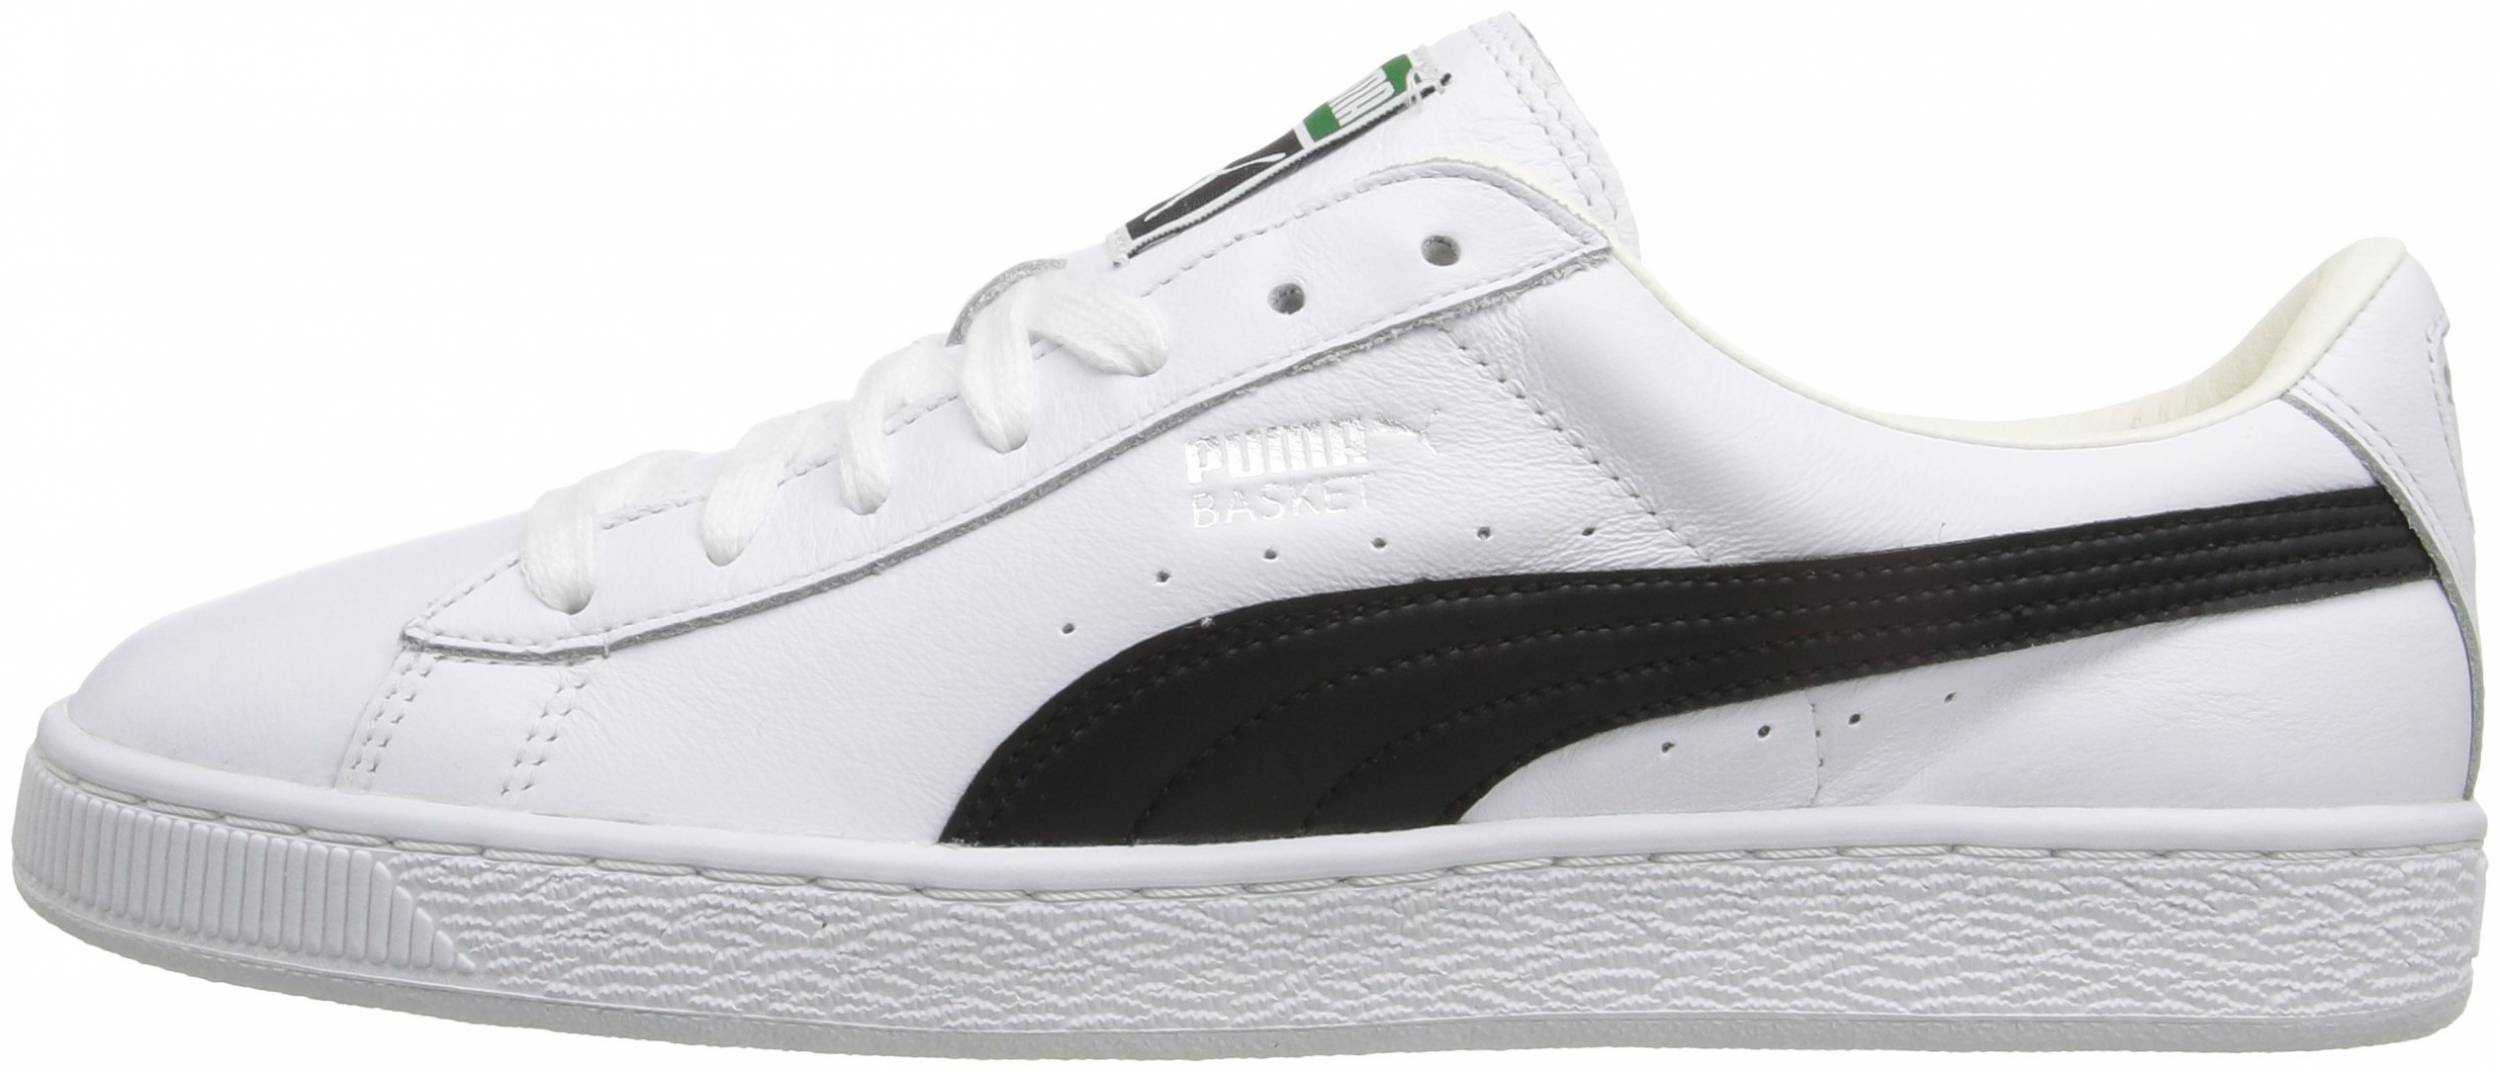 Puma Basket Classic LFS sneakers in 6 colors (only $33) | RunRepeat